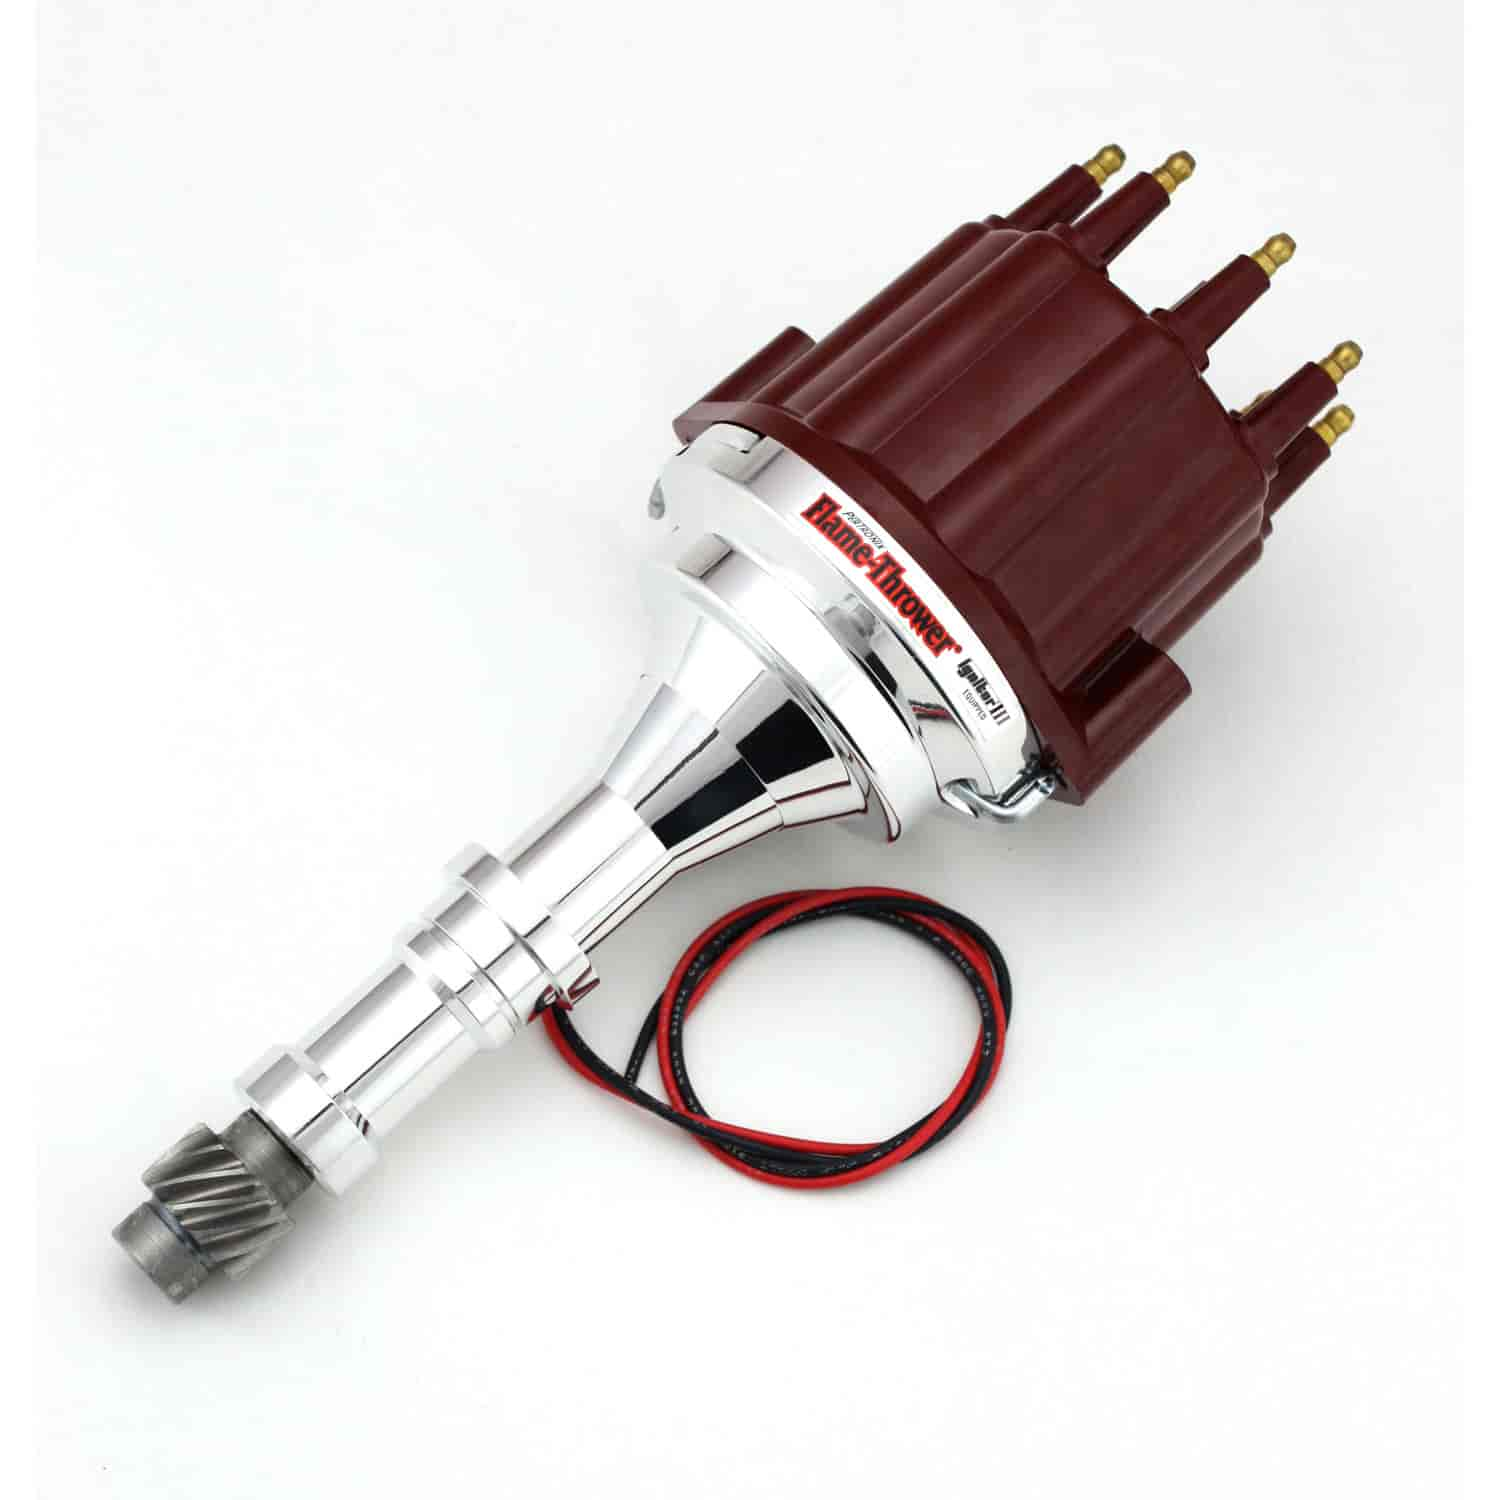 Pertronix D7150811 - Pertronix Flame-Thrower Ignitor III Billet Distributors